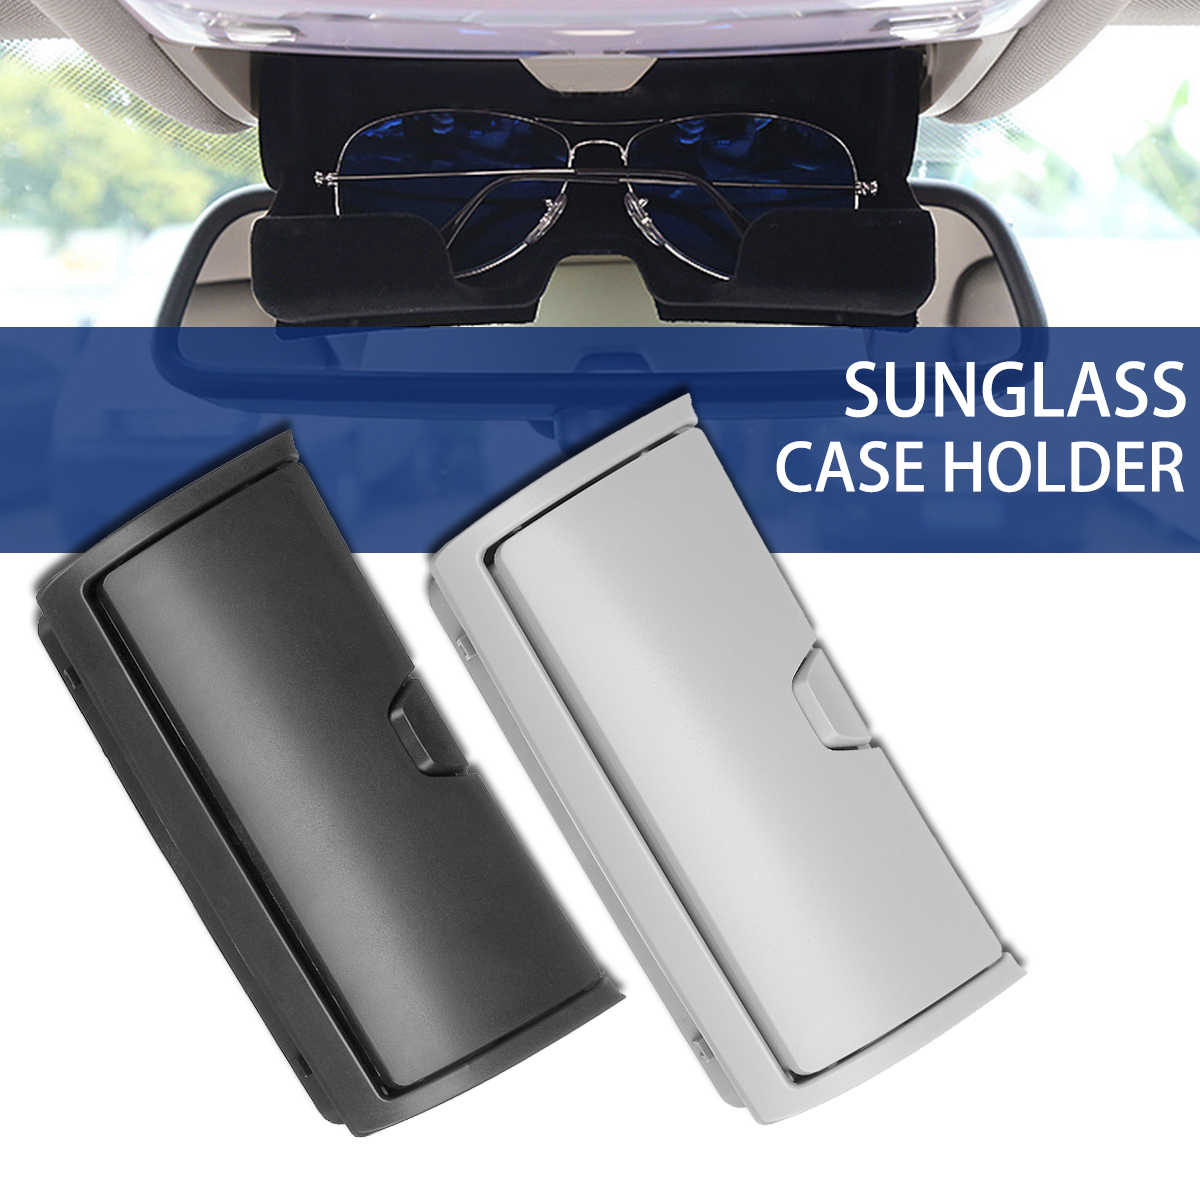 ae46df7b7e33 Detail Feedback Questions about 1Pc Car Sunglasses Case Holder Eye Glasses  Cage Clip Organizer Plastic Storage Box For BMW X5 X6 F15 F16 2014 2017 ...